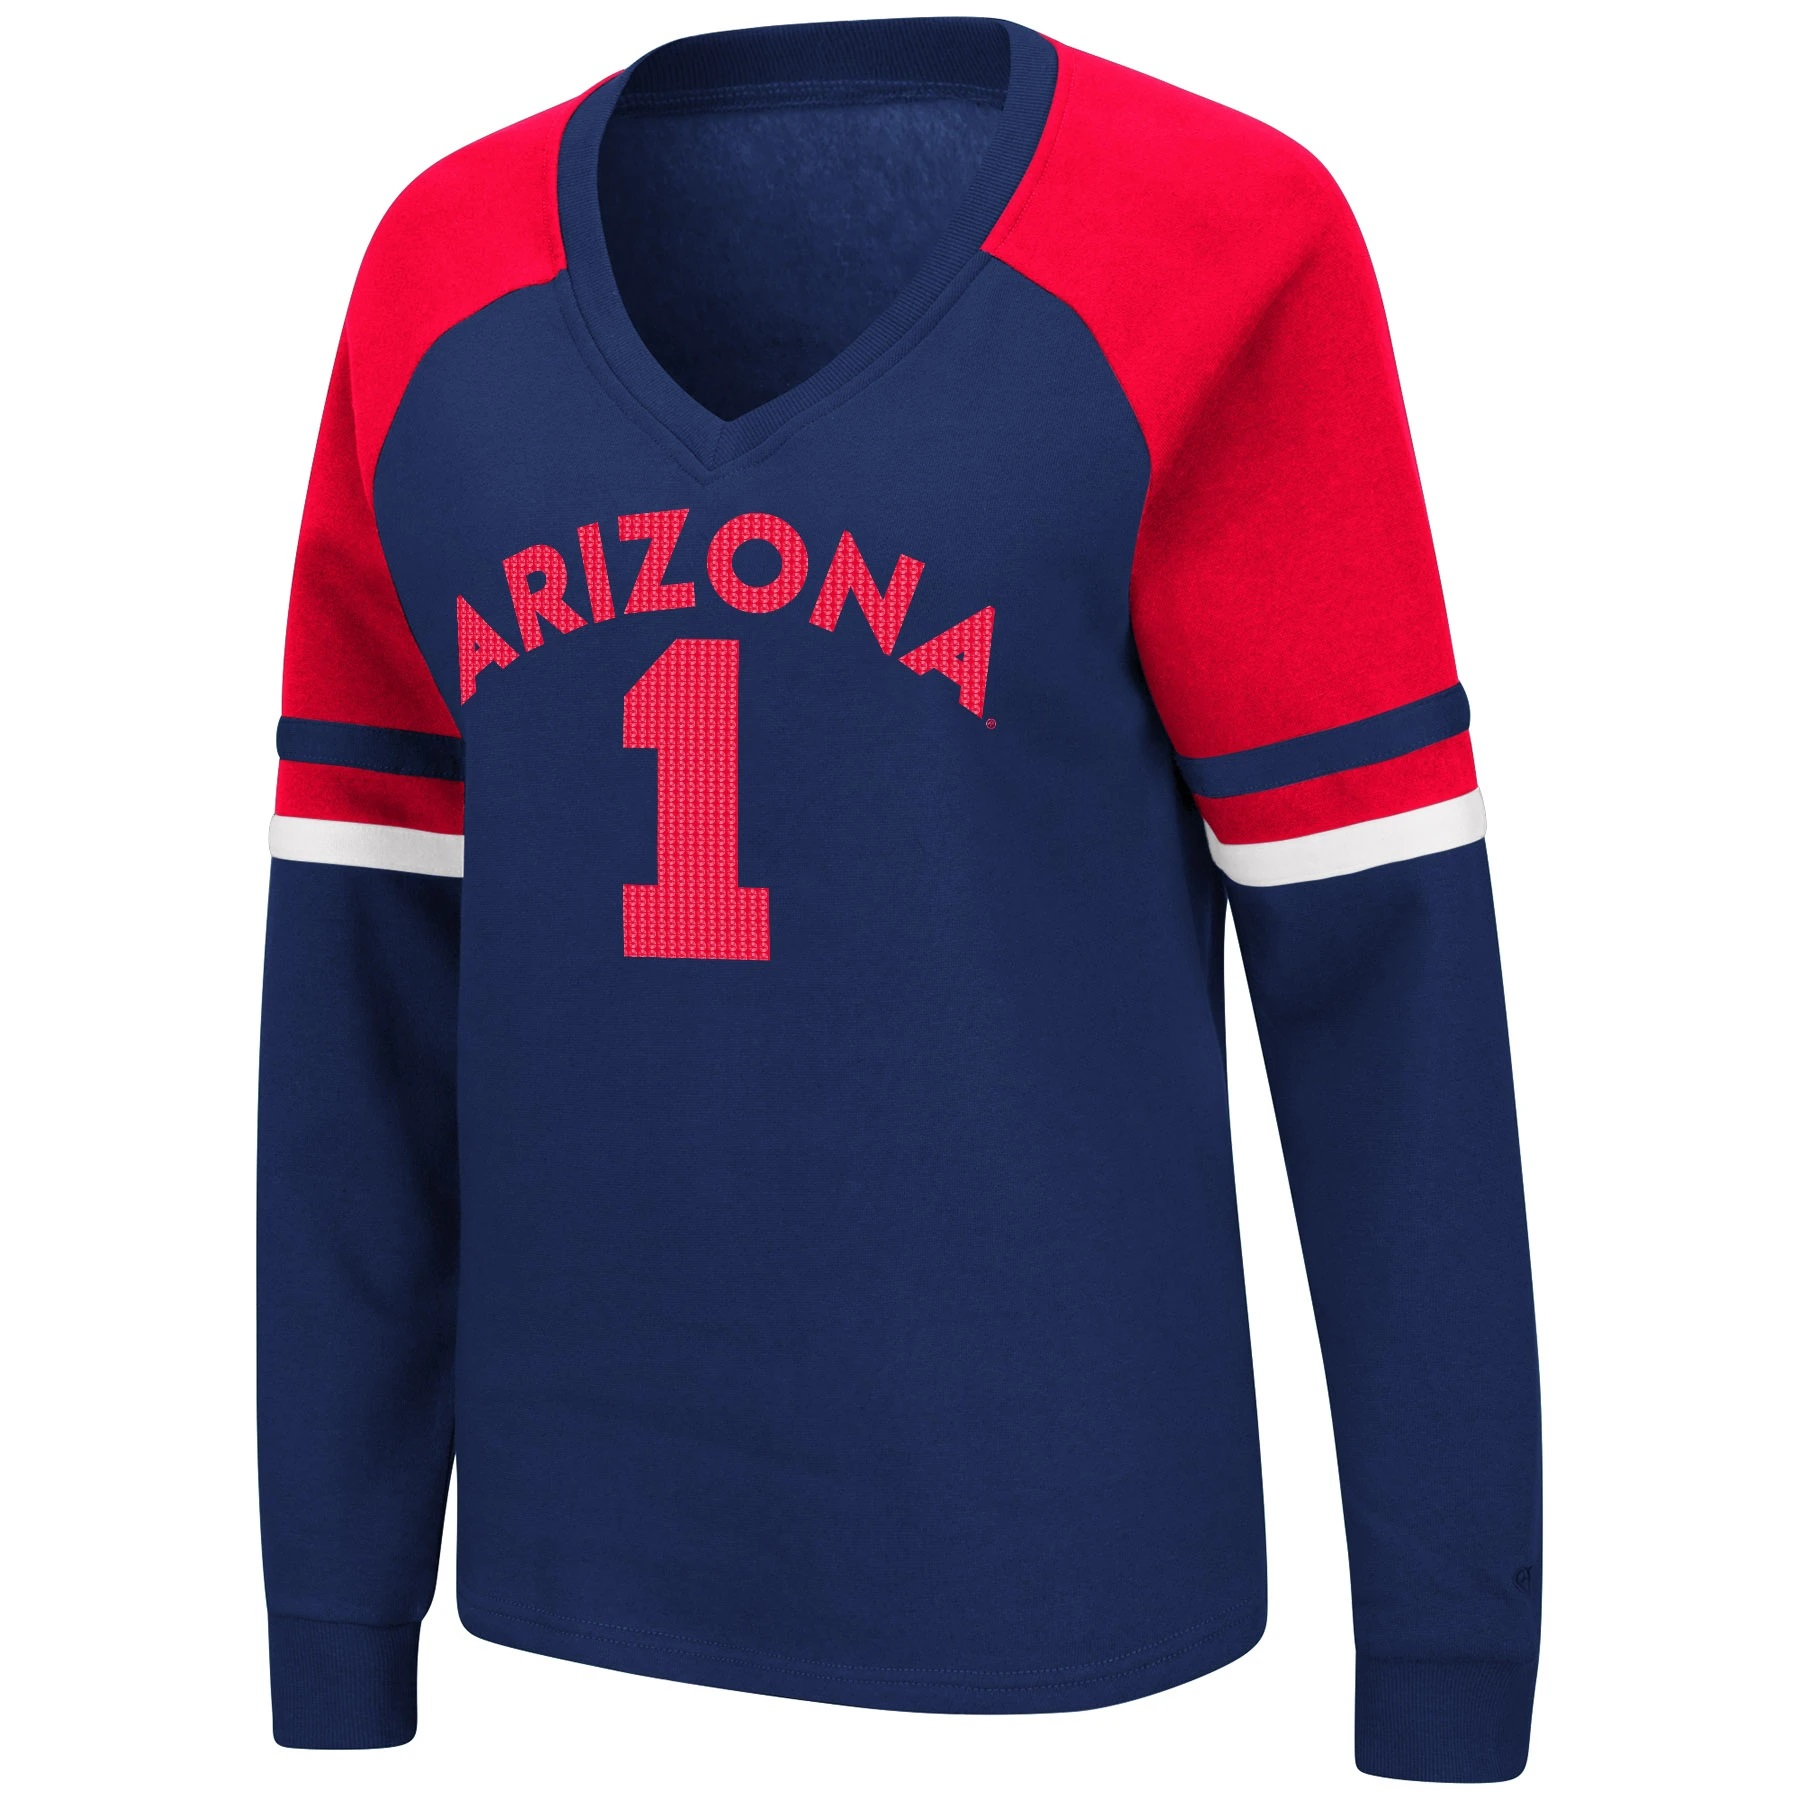 Cover Image For Colosseum: Arizona 1 Marta V-Neck Fleece - Navy/Red